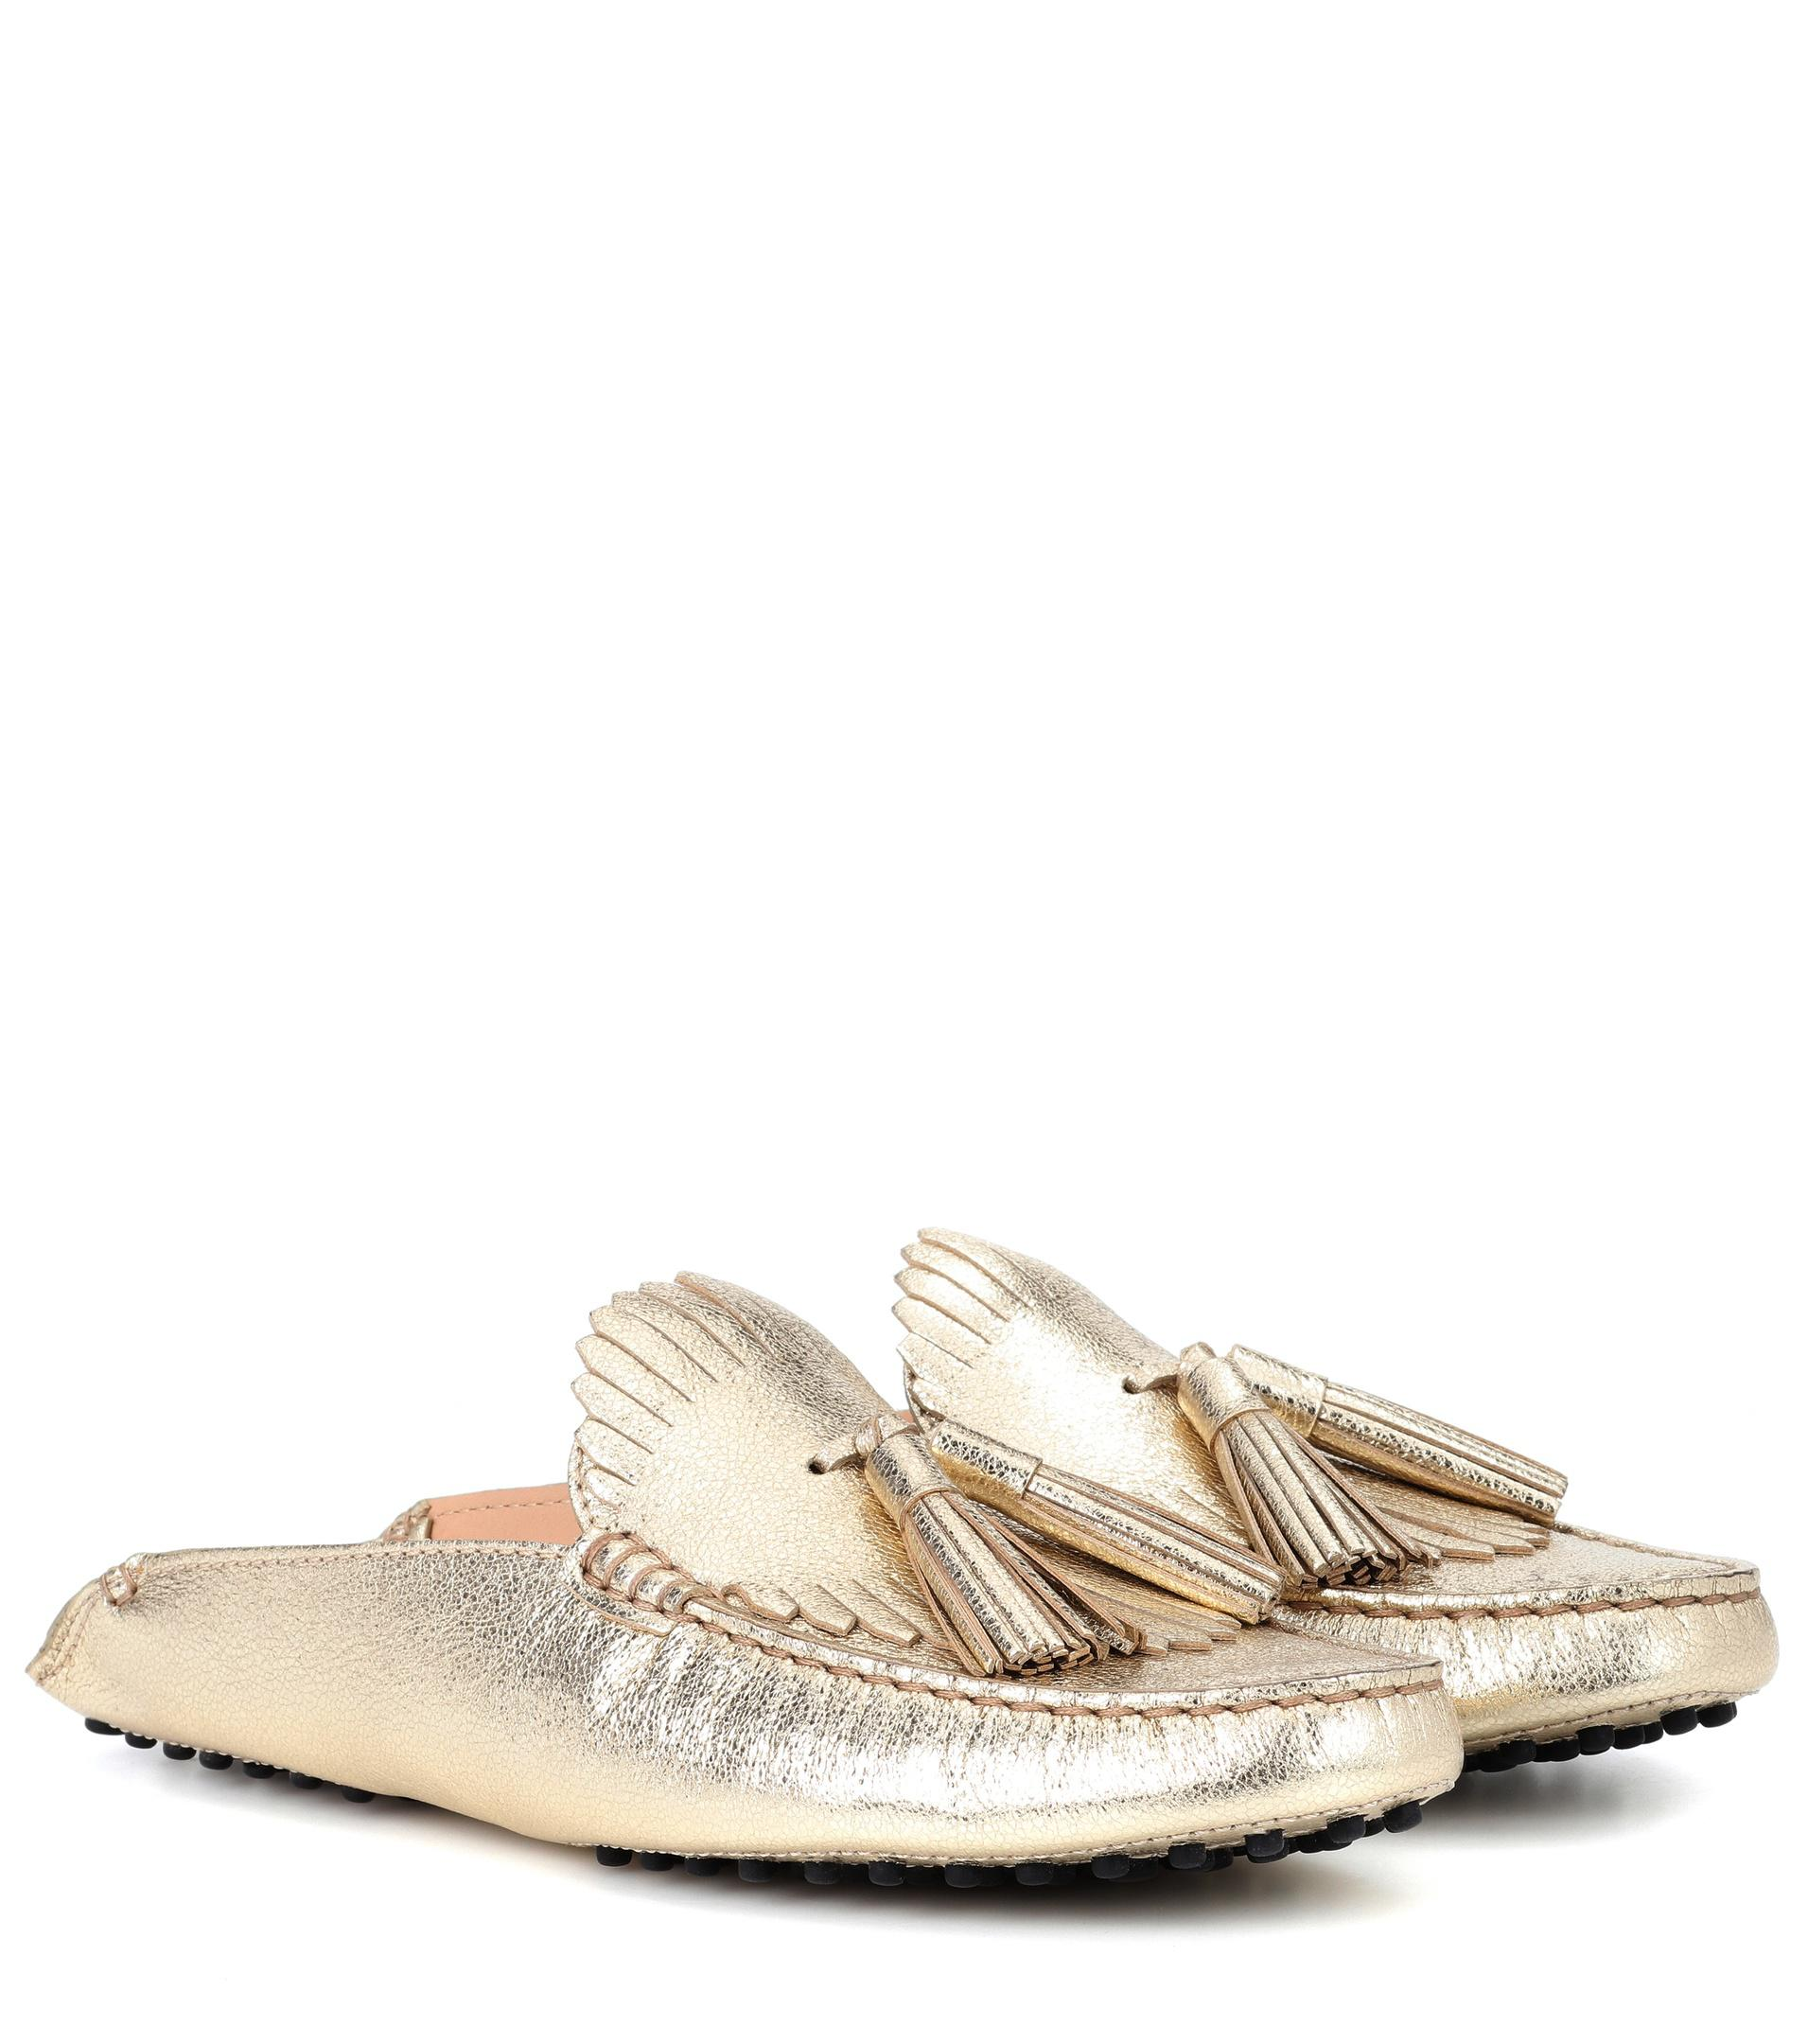 Tods Gommino Metallic Leather Dr... cheap visa payment aed9t